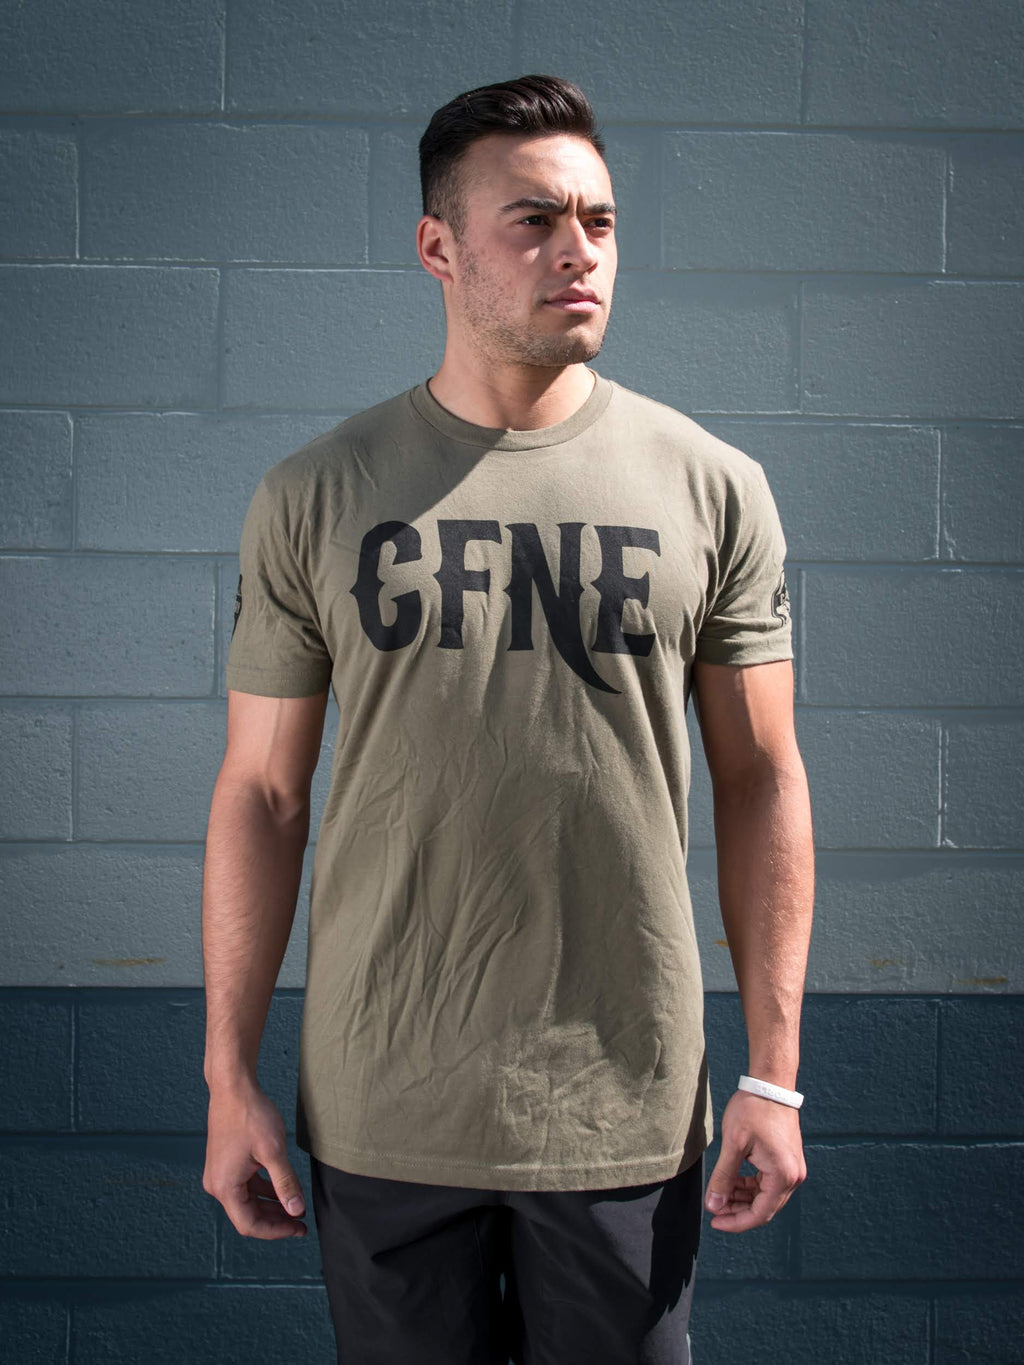 CFNE Men's T-Shirt - Military Green